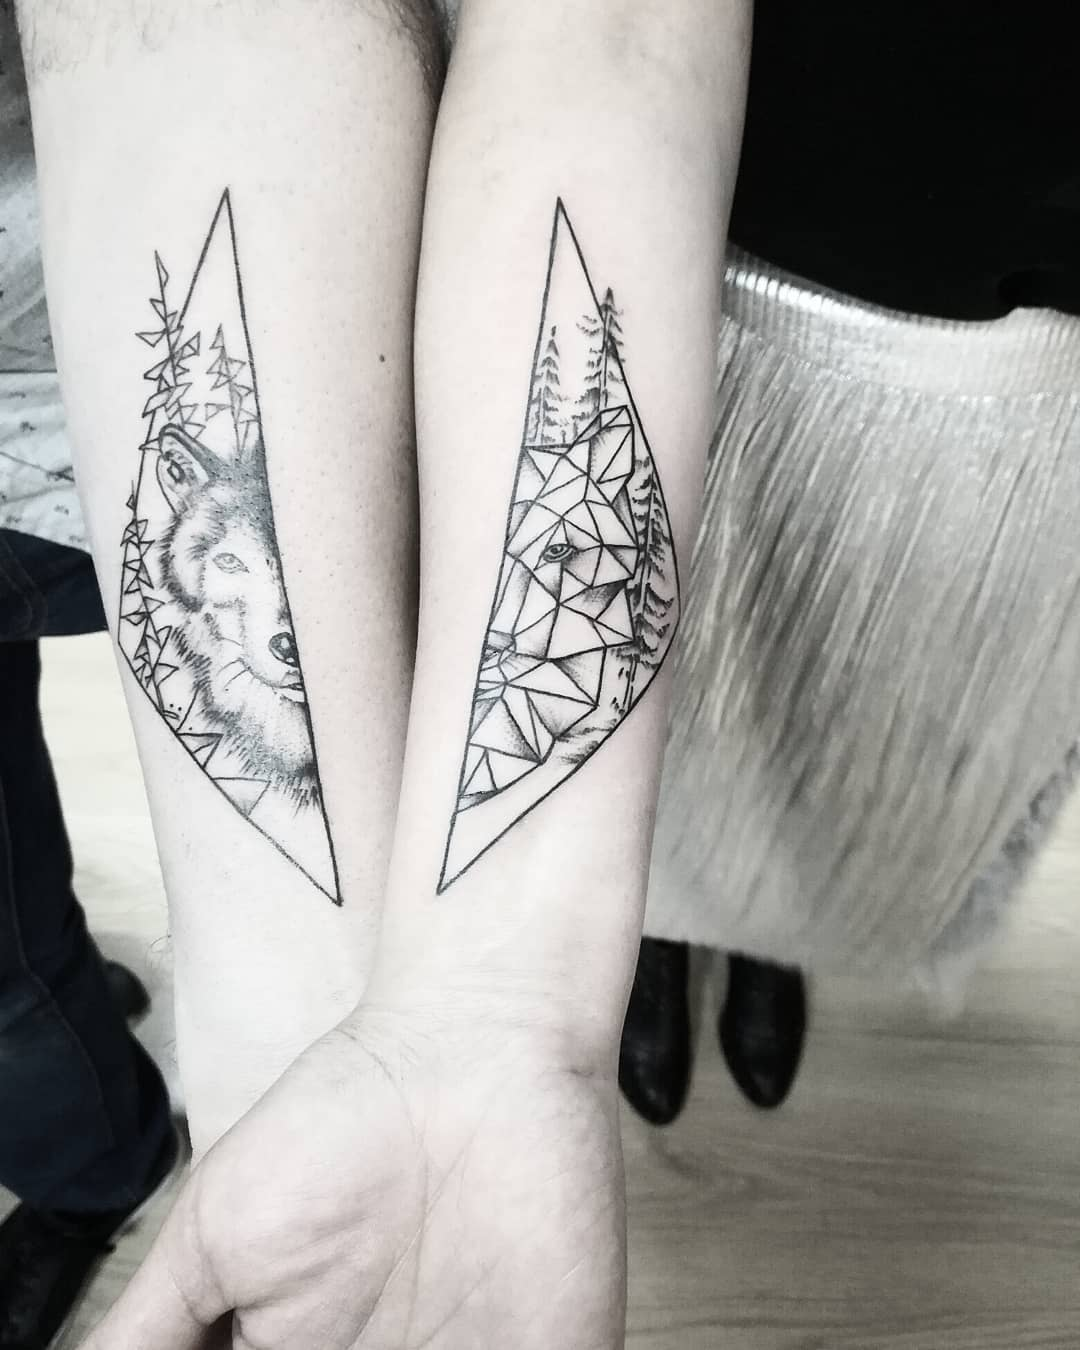 matching tattoos of geometric wolf and geometric background